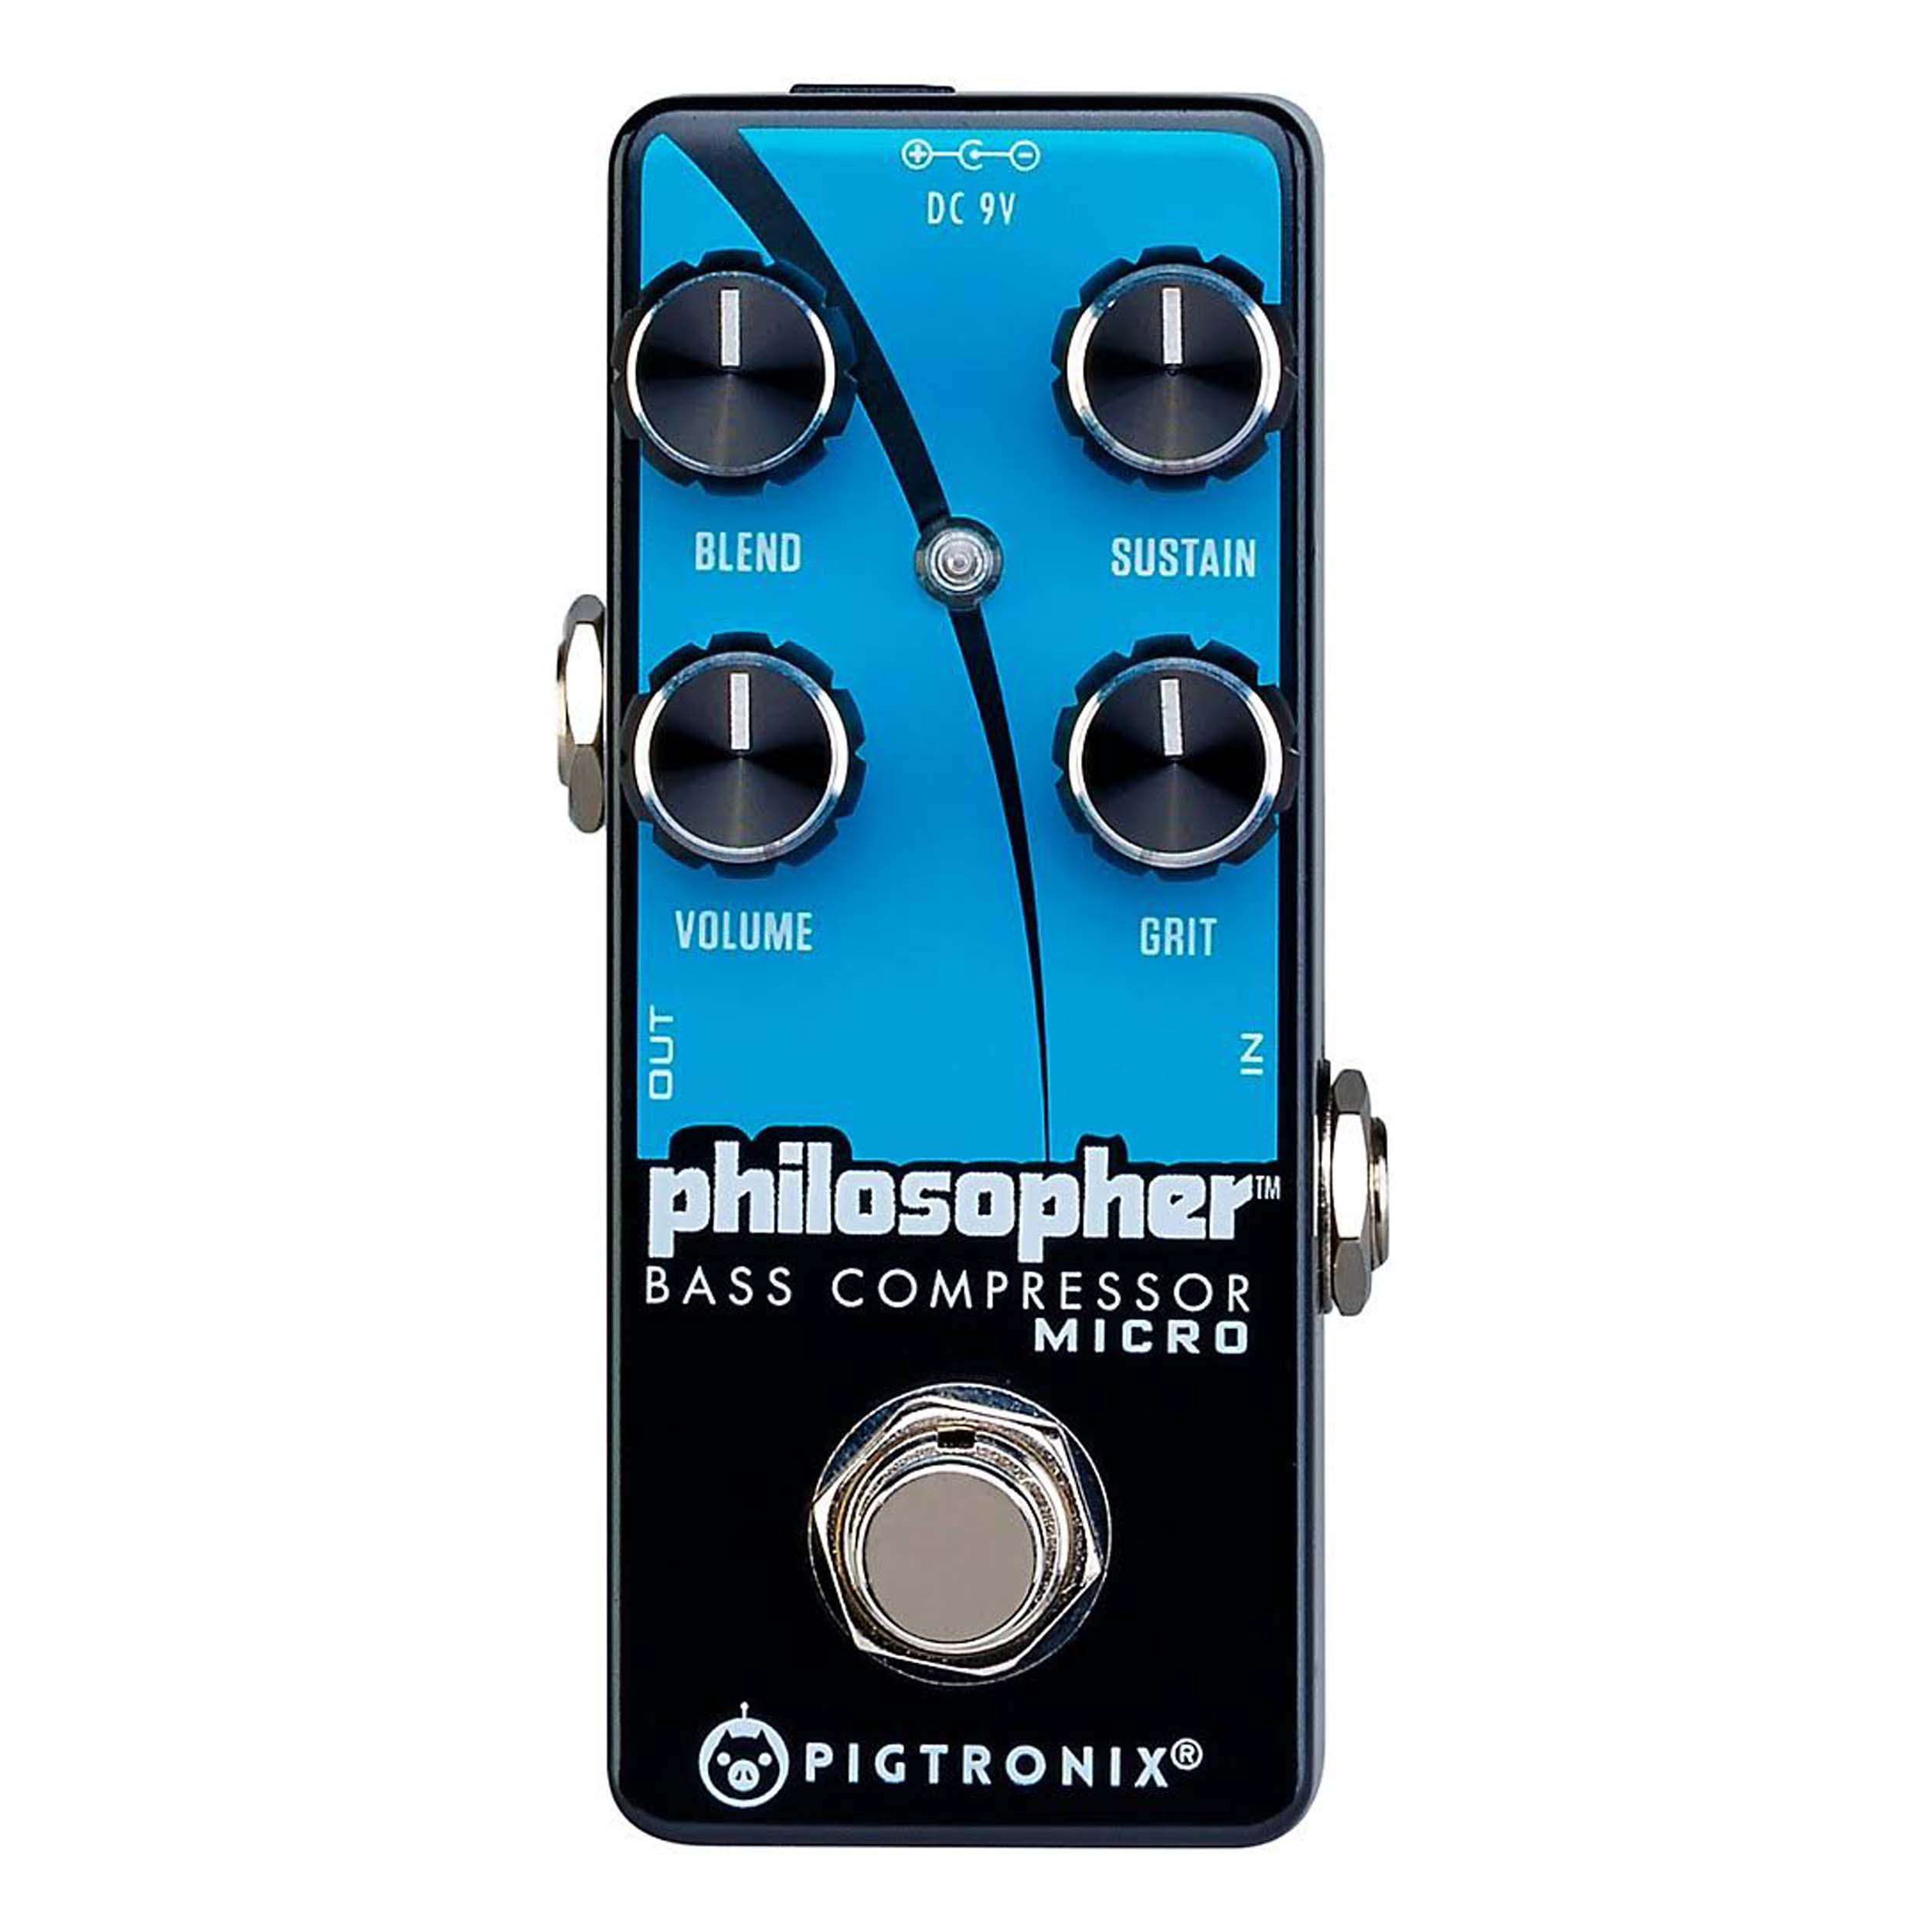 Pigtronix Philosopher Bass Compressor Micro Effects Pedal by Pigtronix